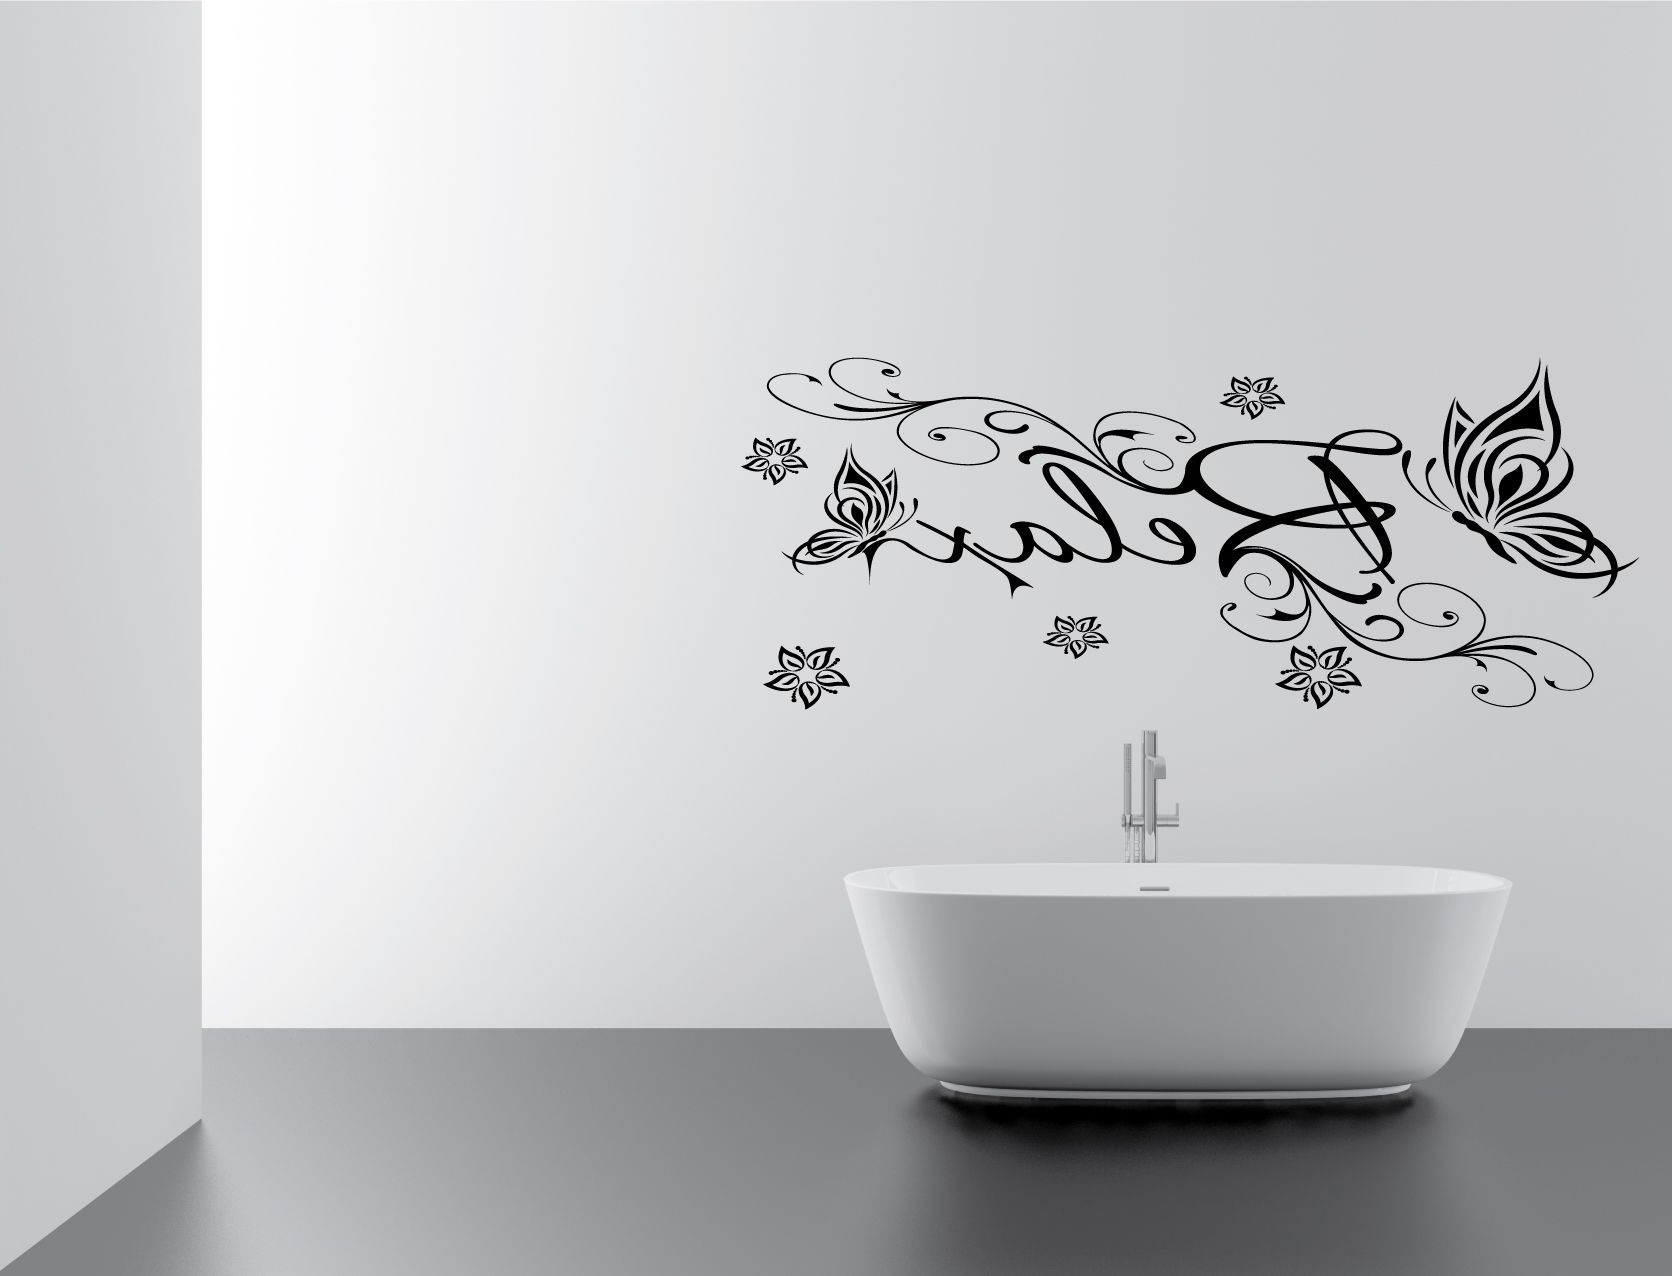 Black And White Bathroom Wall Art Inside Well Known Wall Art: Adorable Gallery Bathroomwall Art Stickers Amazon (View 14 of 15)